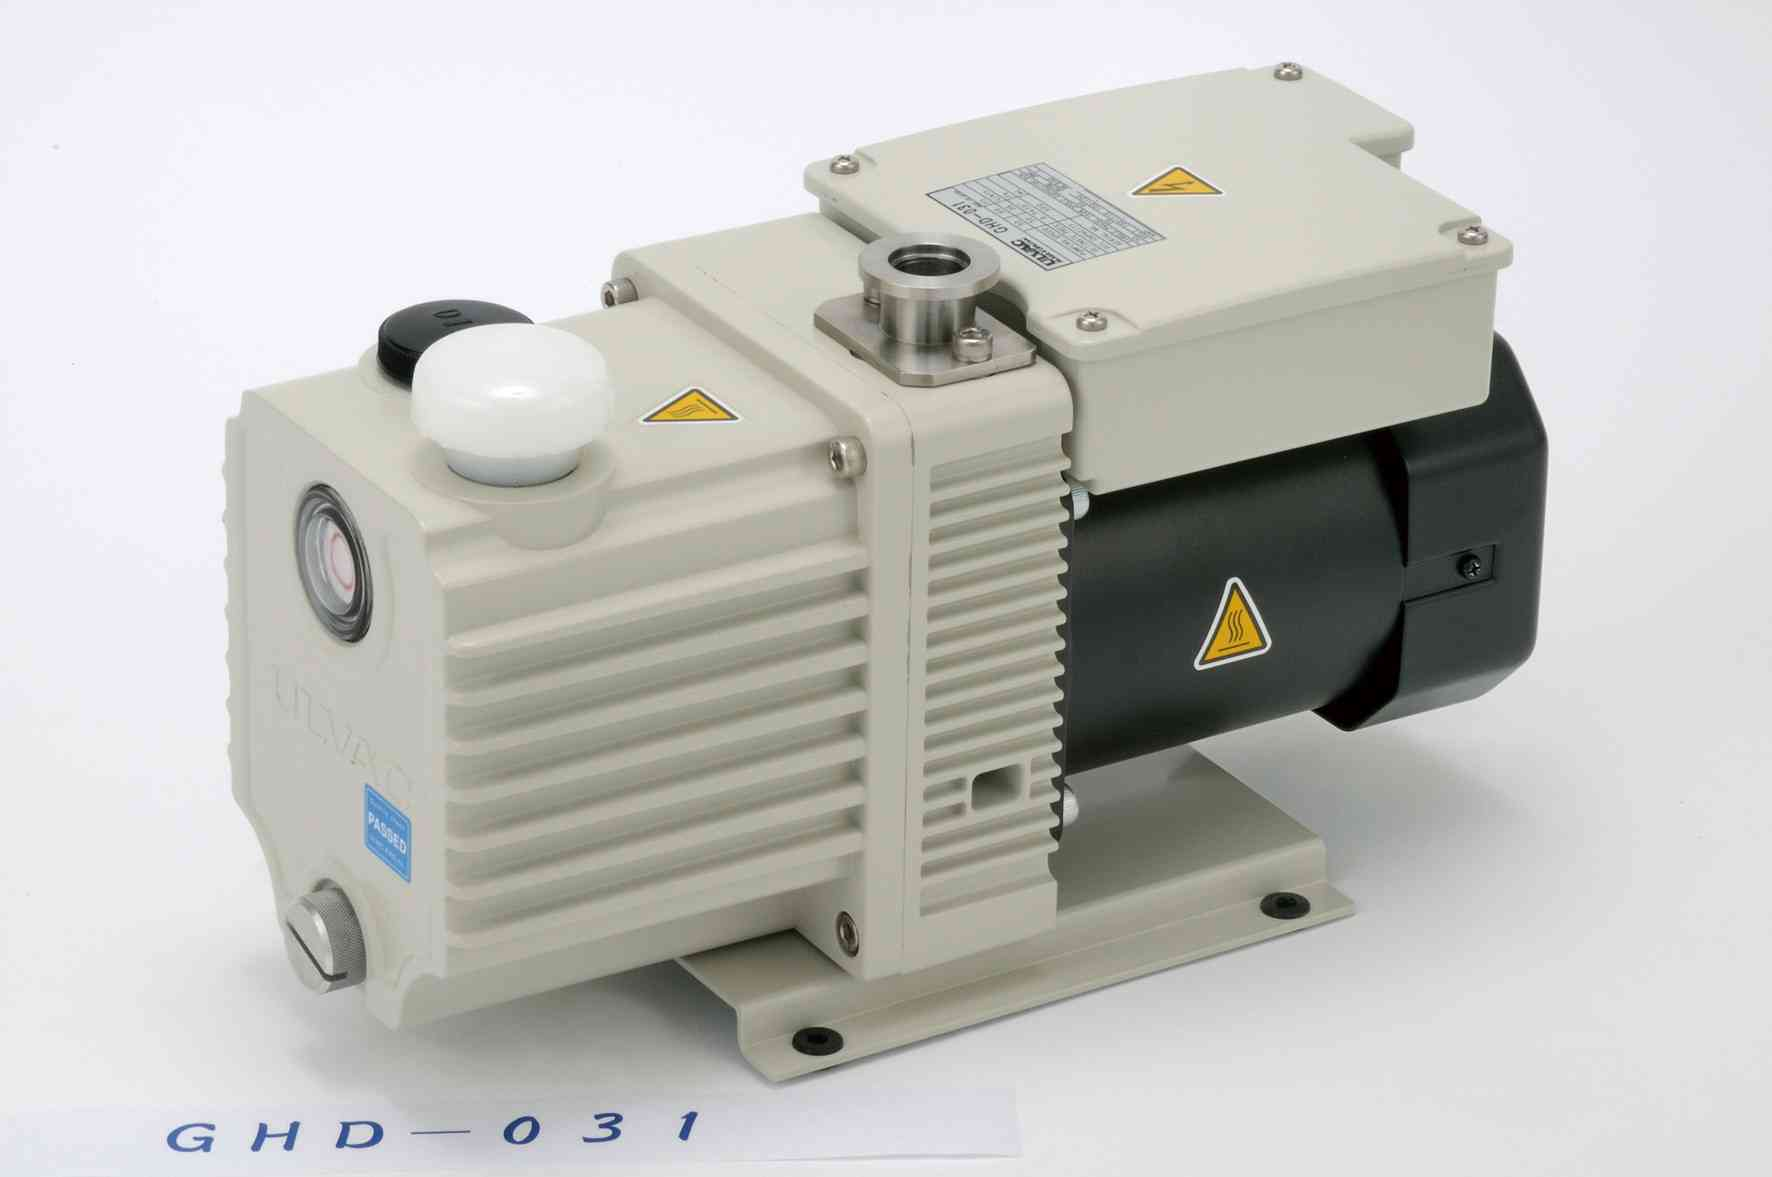 OIL SEALED ROTARY VACUUM PUMP GHD-031